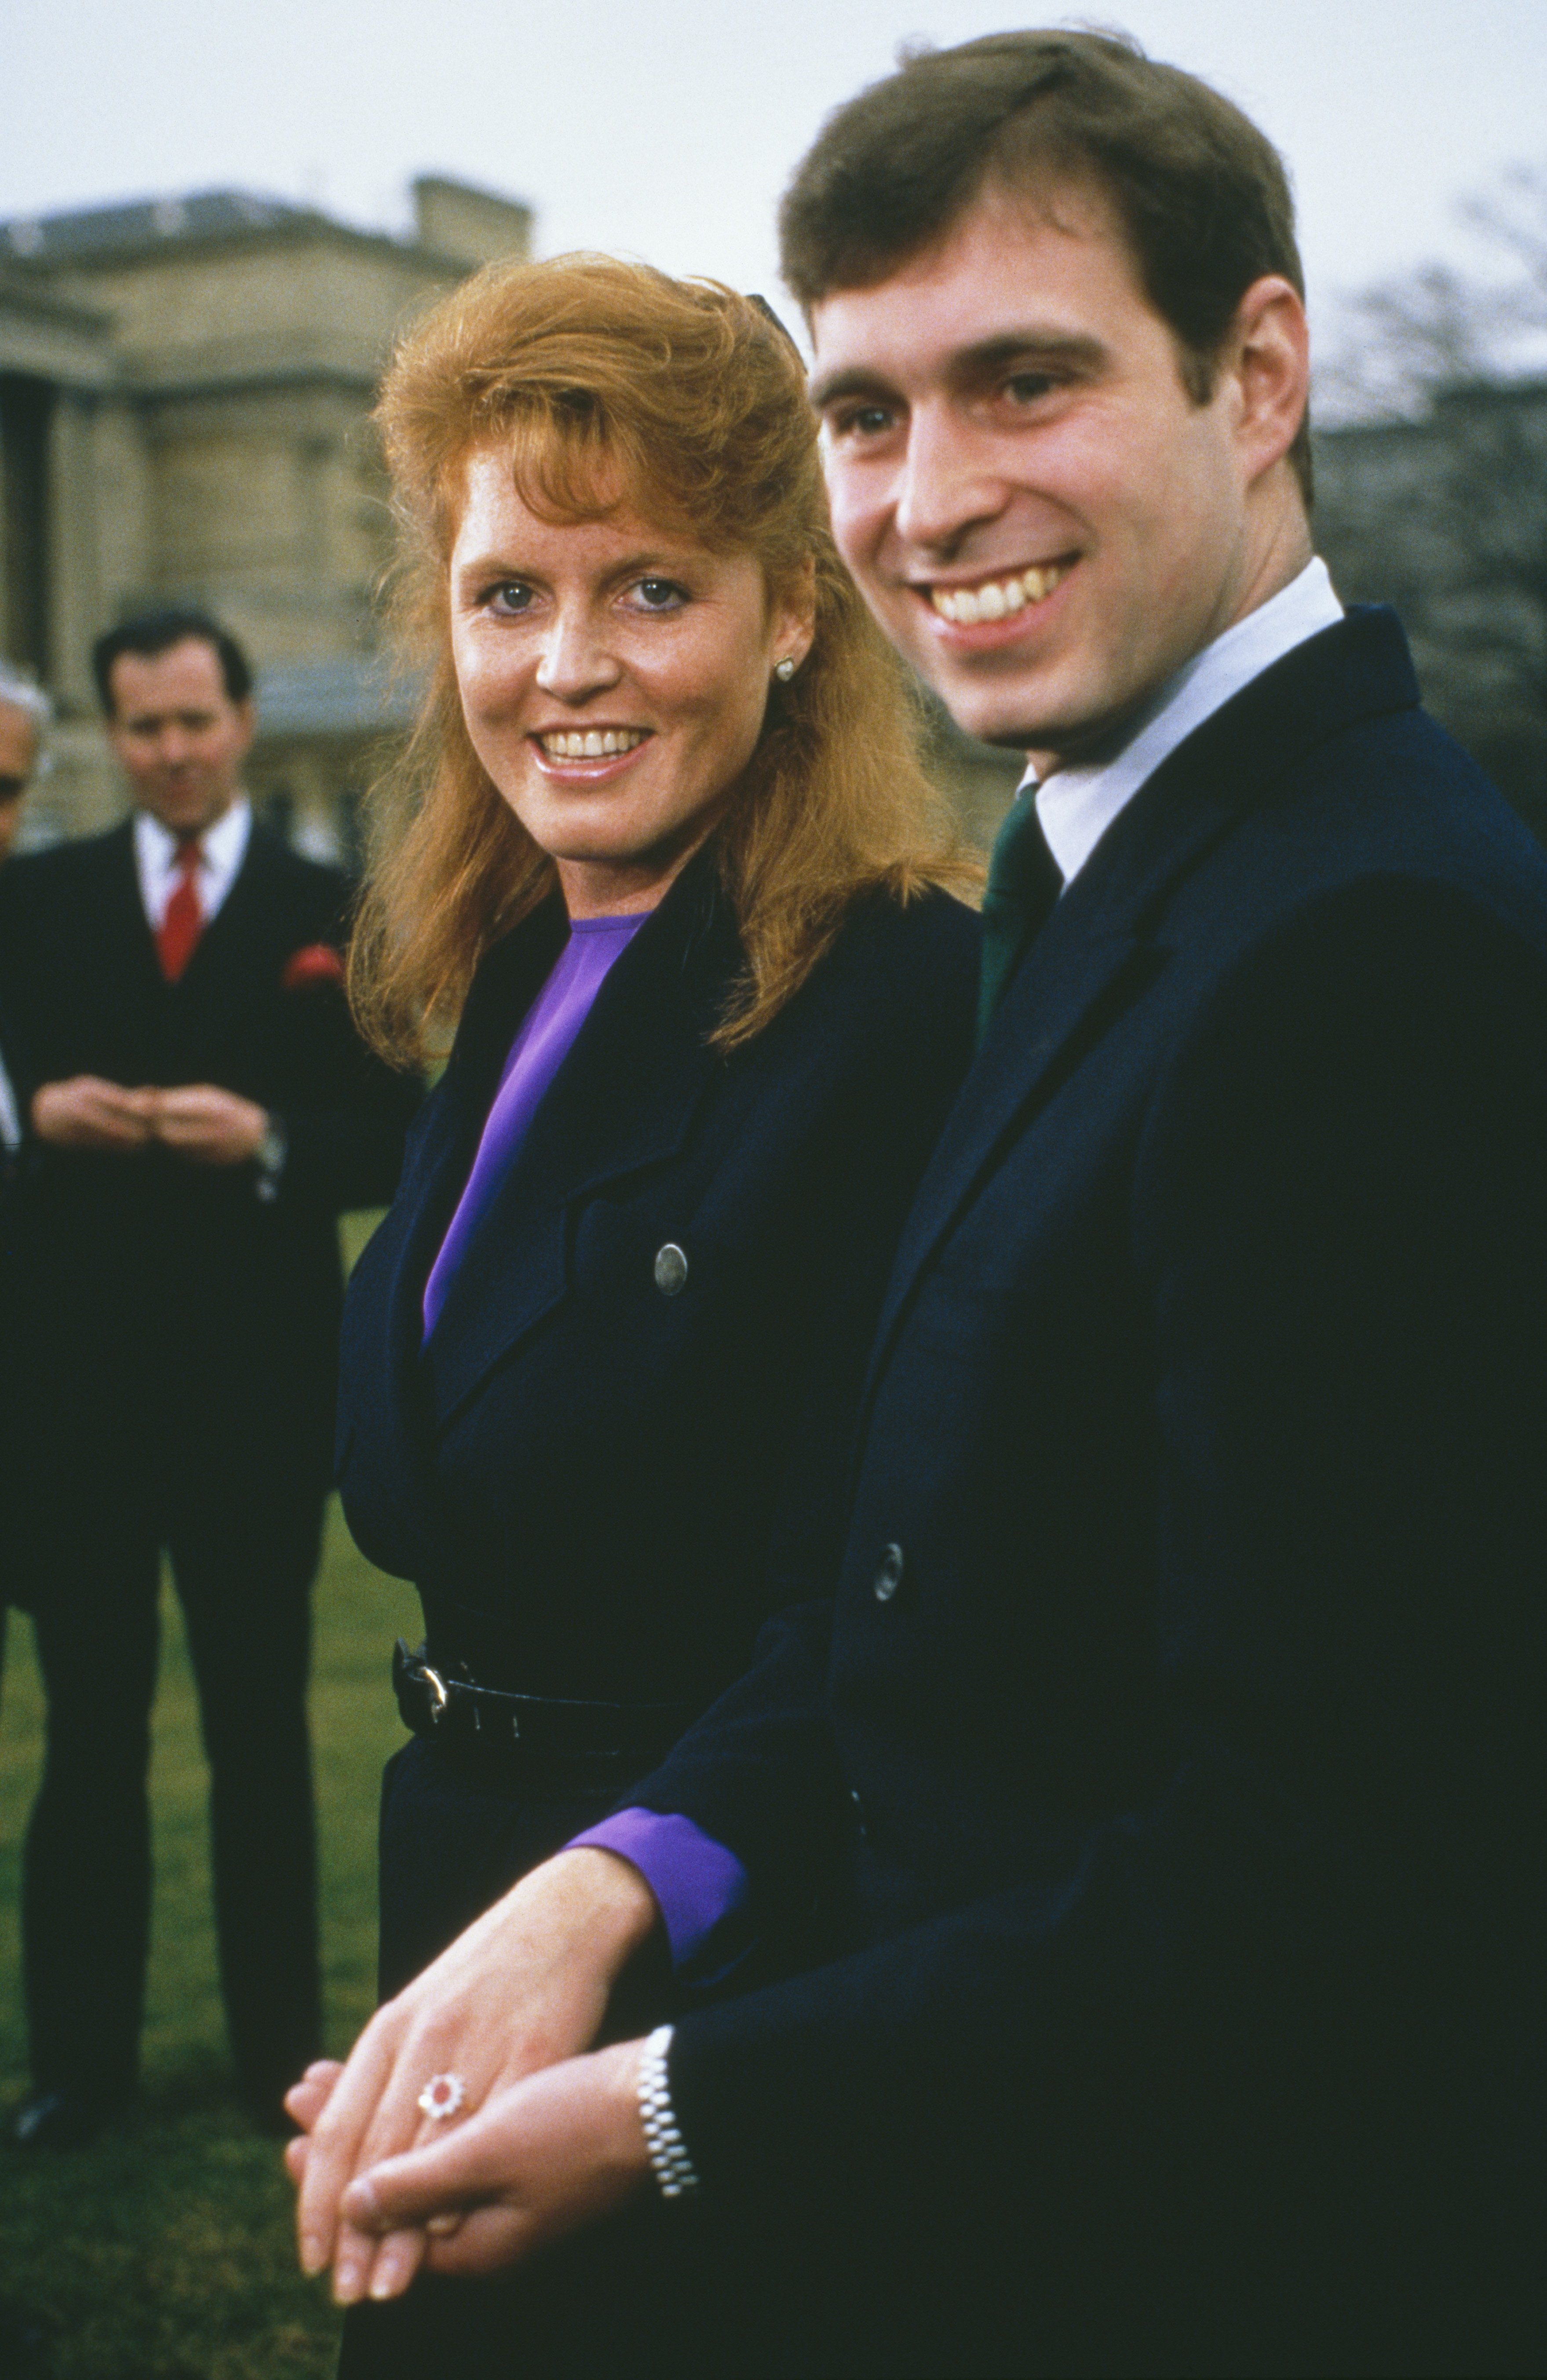 Prince Andrew with Sarah Ferguson at Buckingham Palace after the announcement of their engagement in London on March 17, 1986   Photo: Getty Images